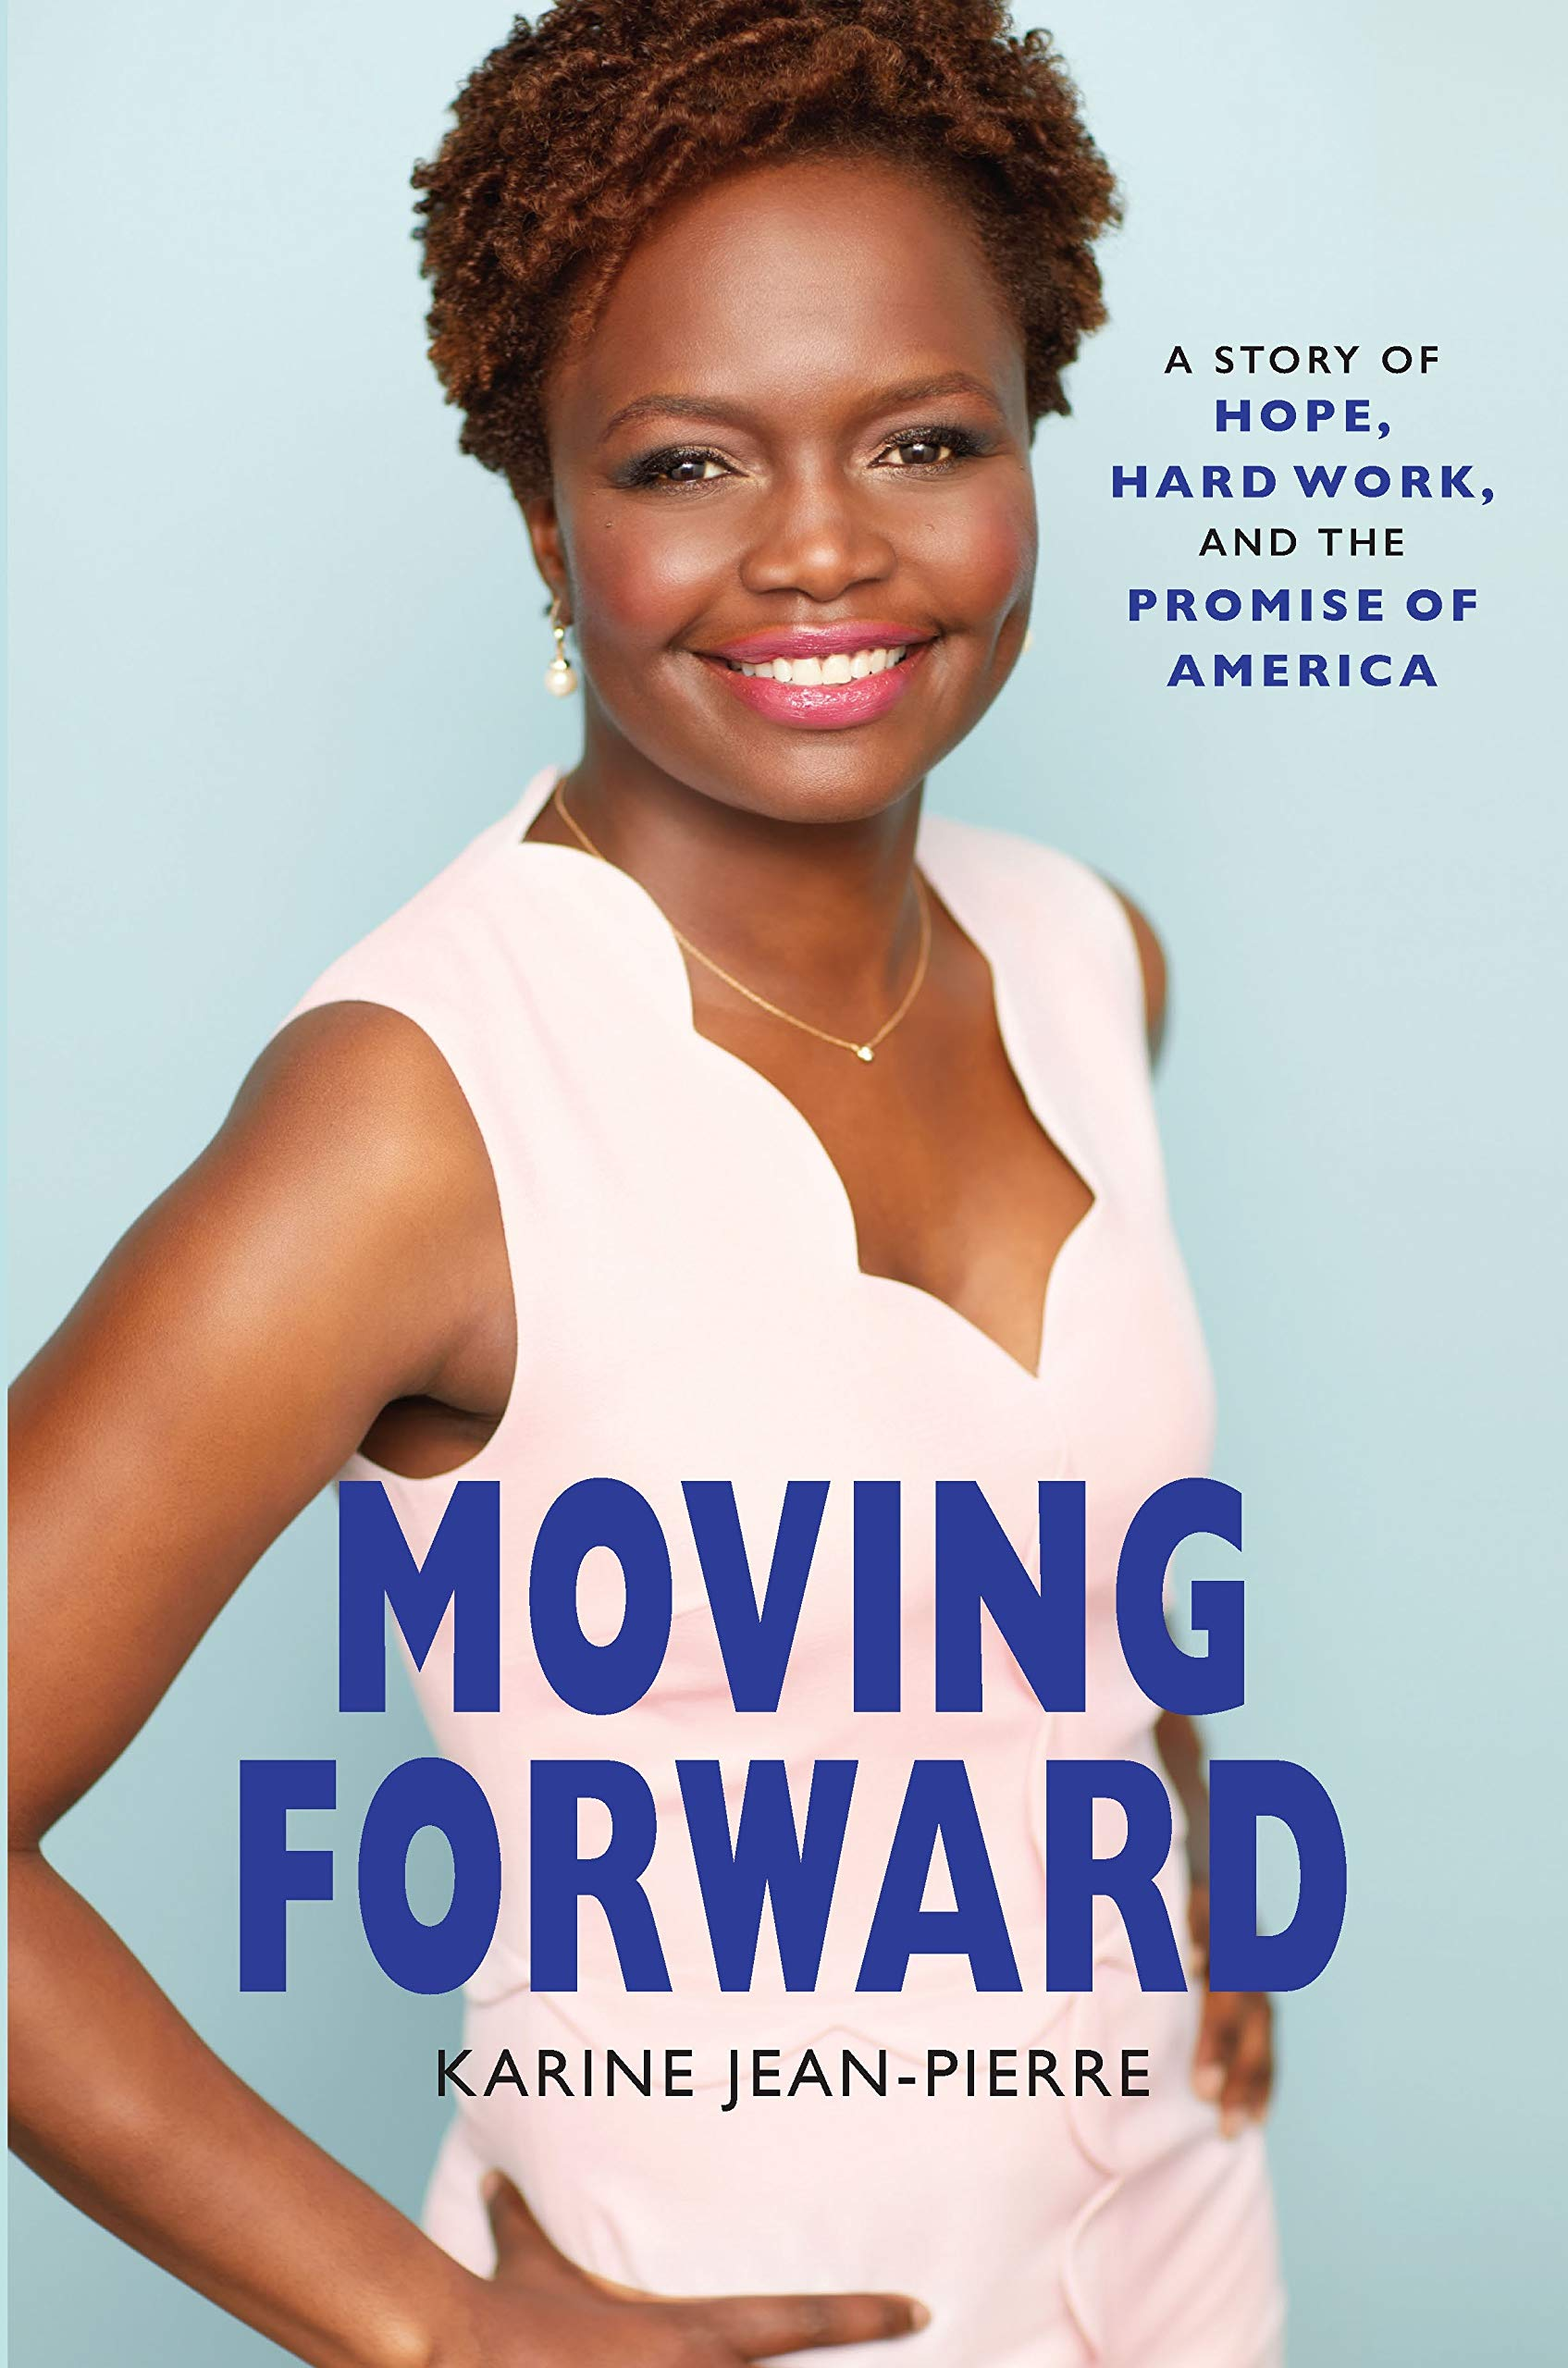 Moving Forward: A Story of Hope, Hard Work, and the Promise of America by Karine Jean-Pierre